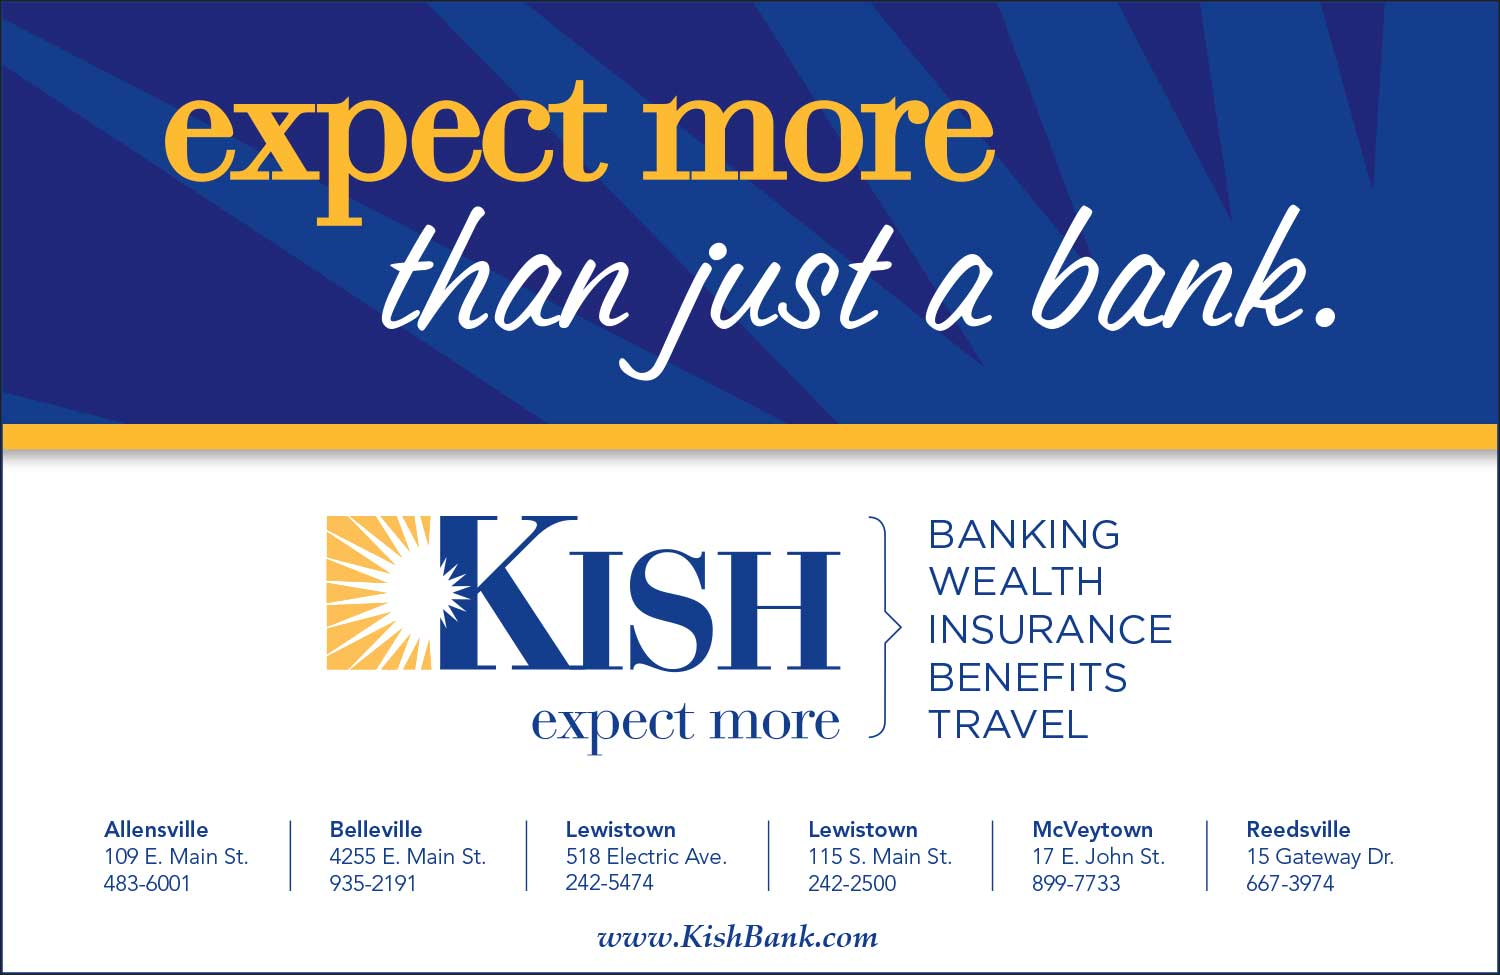 "<center>Kish Bank | <b><a href=""https://www.kishbank.com/home"" target=""_blank"" rel=""noopener noreferrer"">CLICK HERE to view the website</a></b></center>"